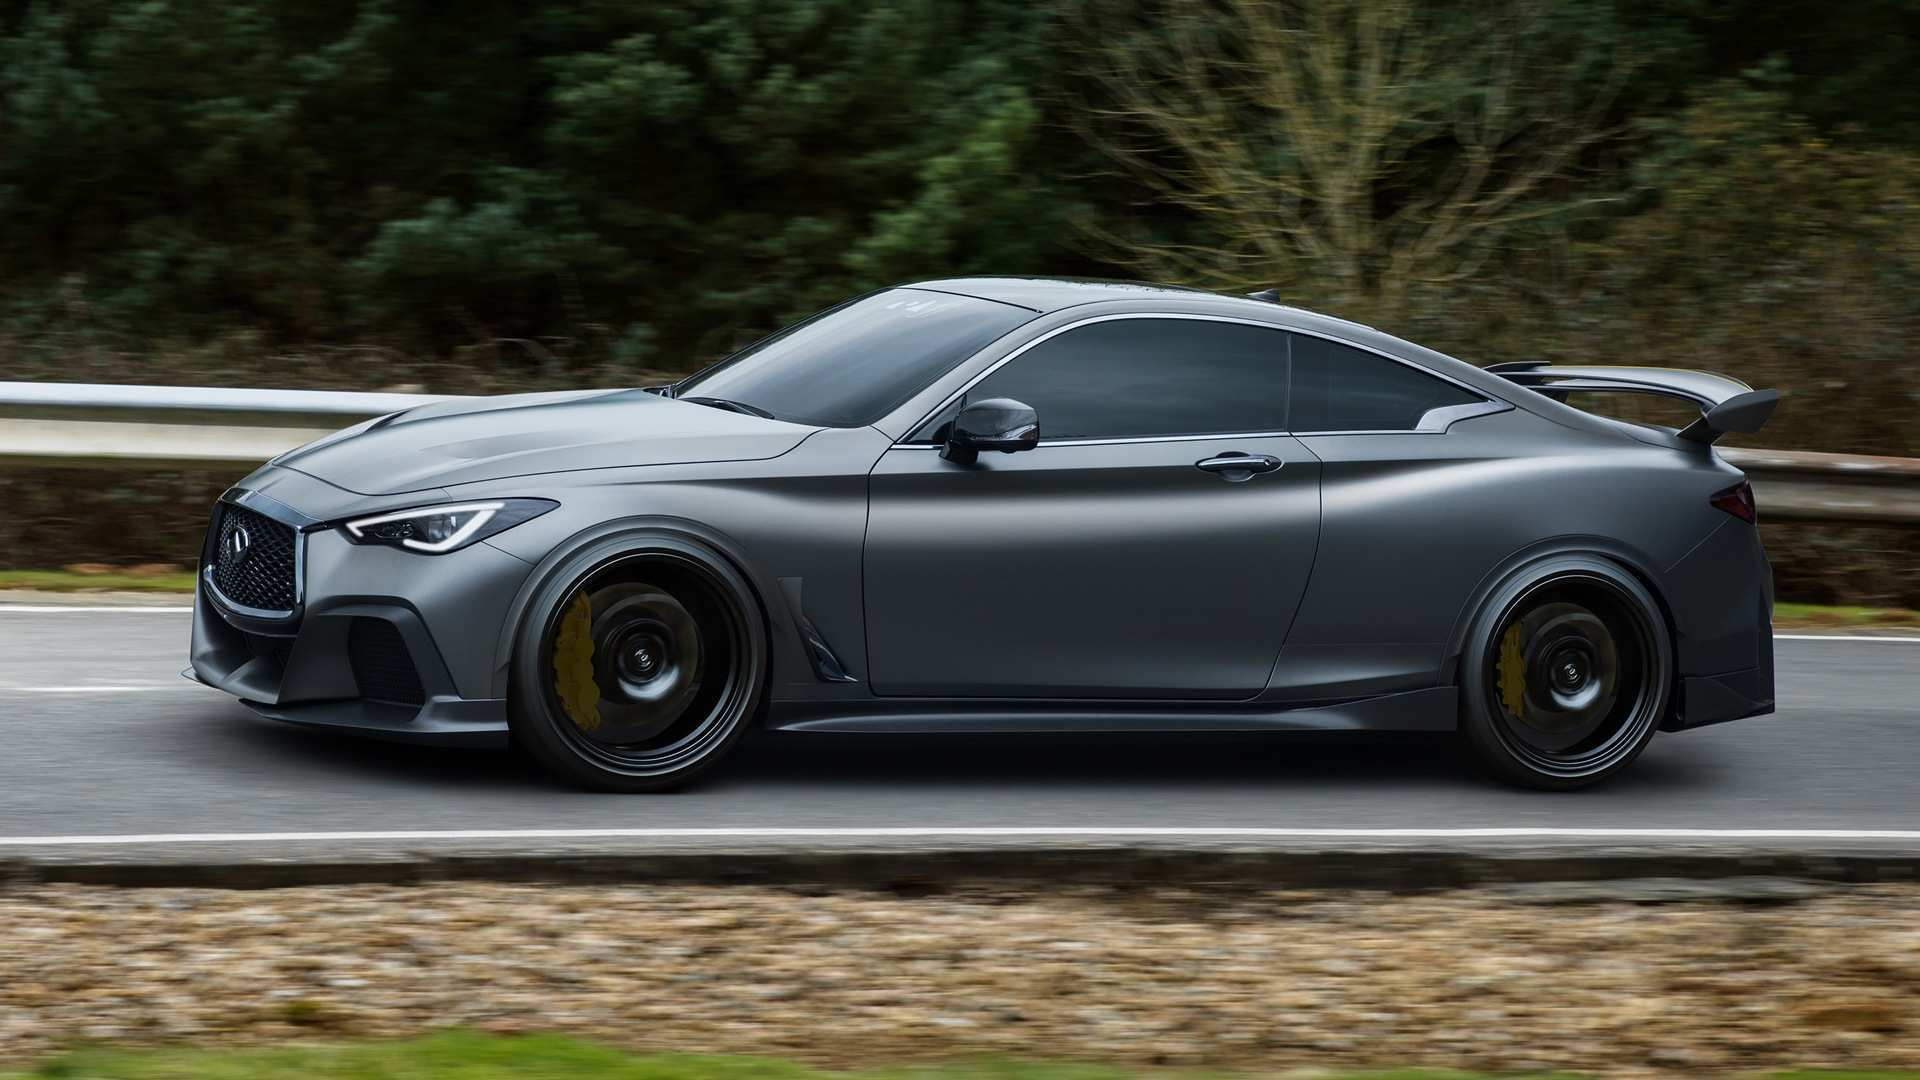 36 Best 2019 Infiniti Q60s Review And Release Date